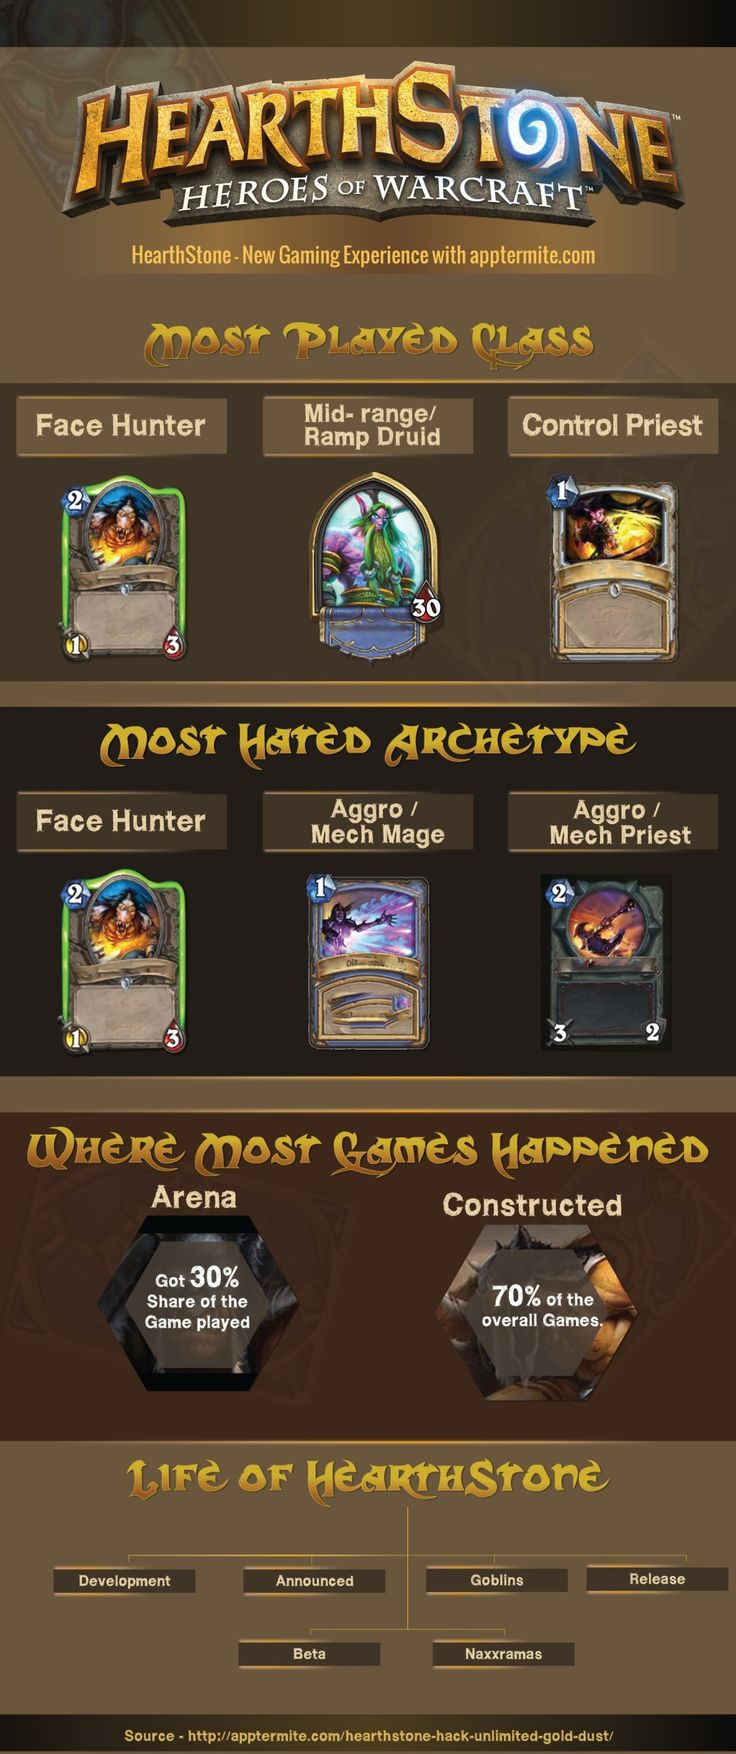 Are you currently looking for the best cheat tool to leverage your Hearthstone game? Do you want to get an unlimited gold source Check this out http://apptermite.com/hearthstone-hack-unlimited-gold-dust/ for more info.